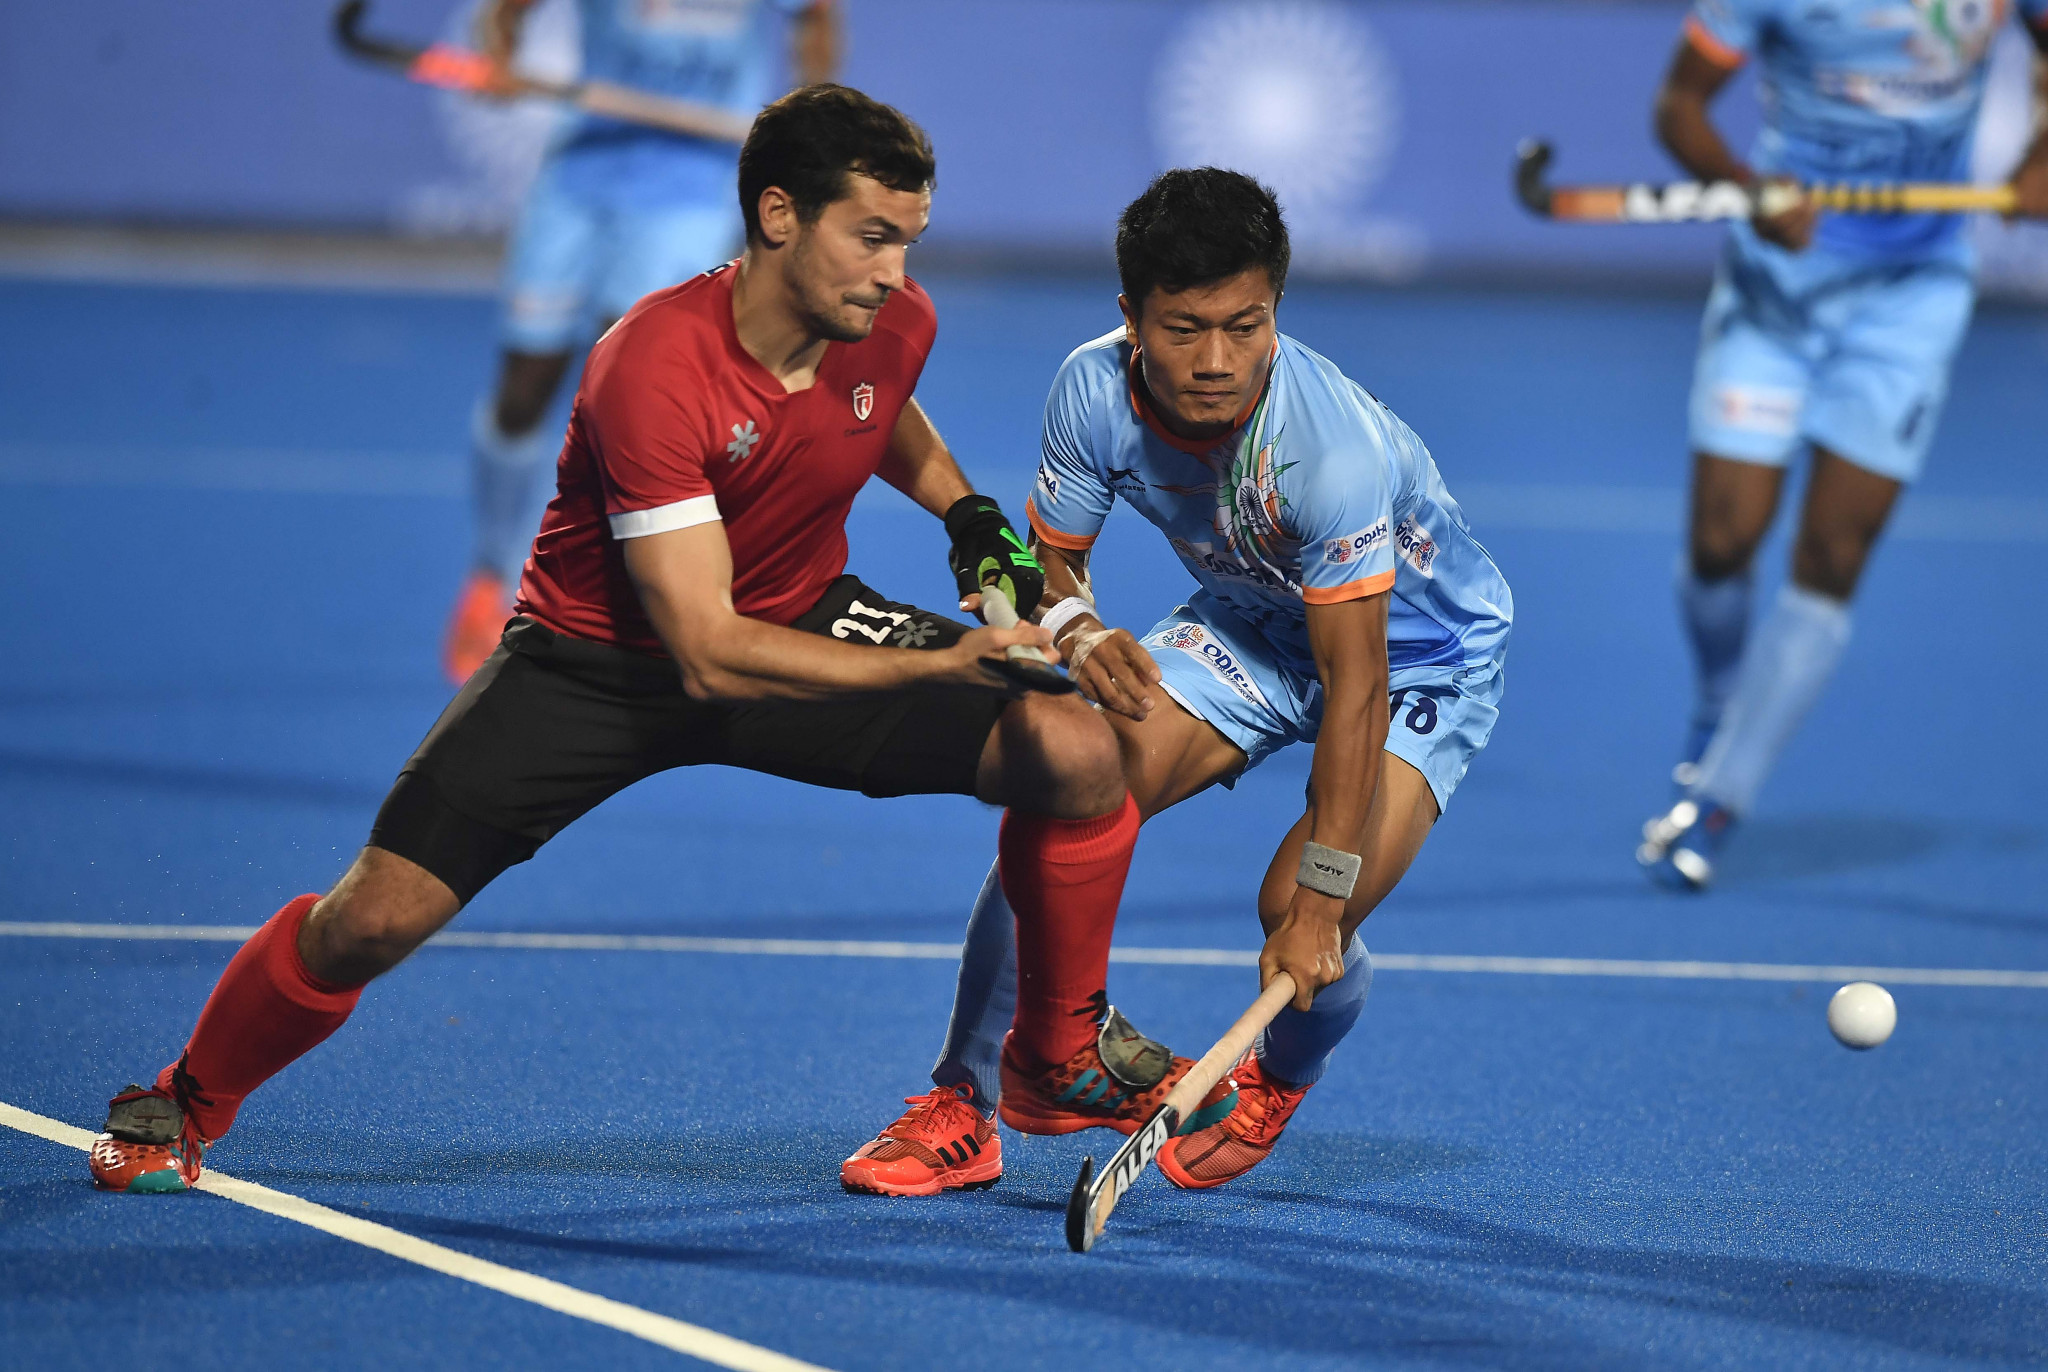 Hosts India qualify directly for last eight at Hockey Men's World Cup after Canada thrashing